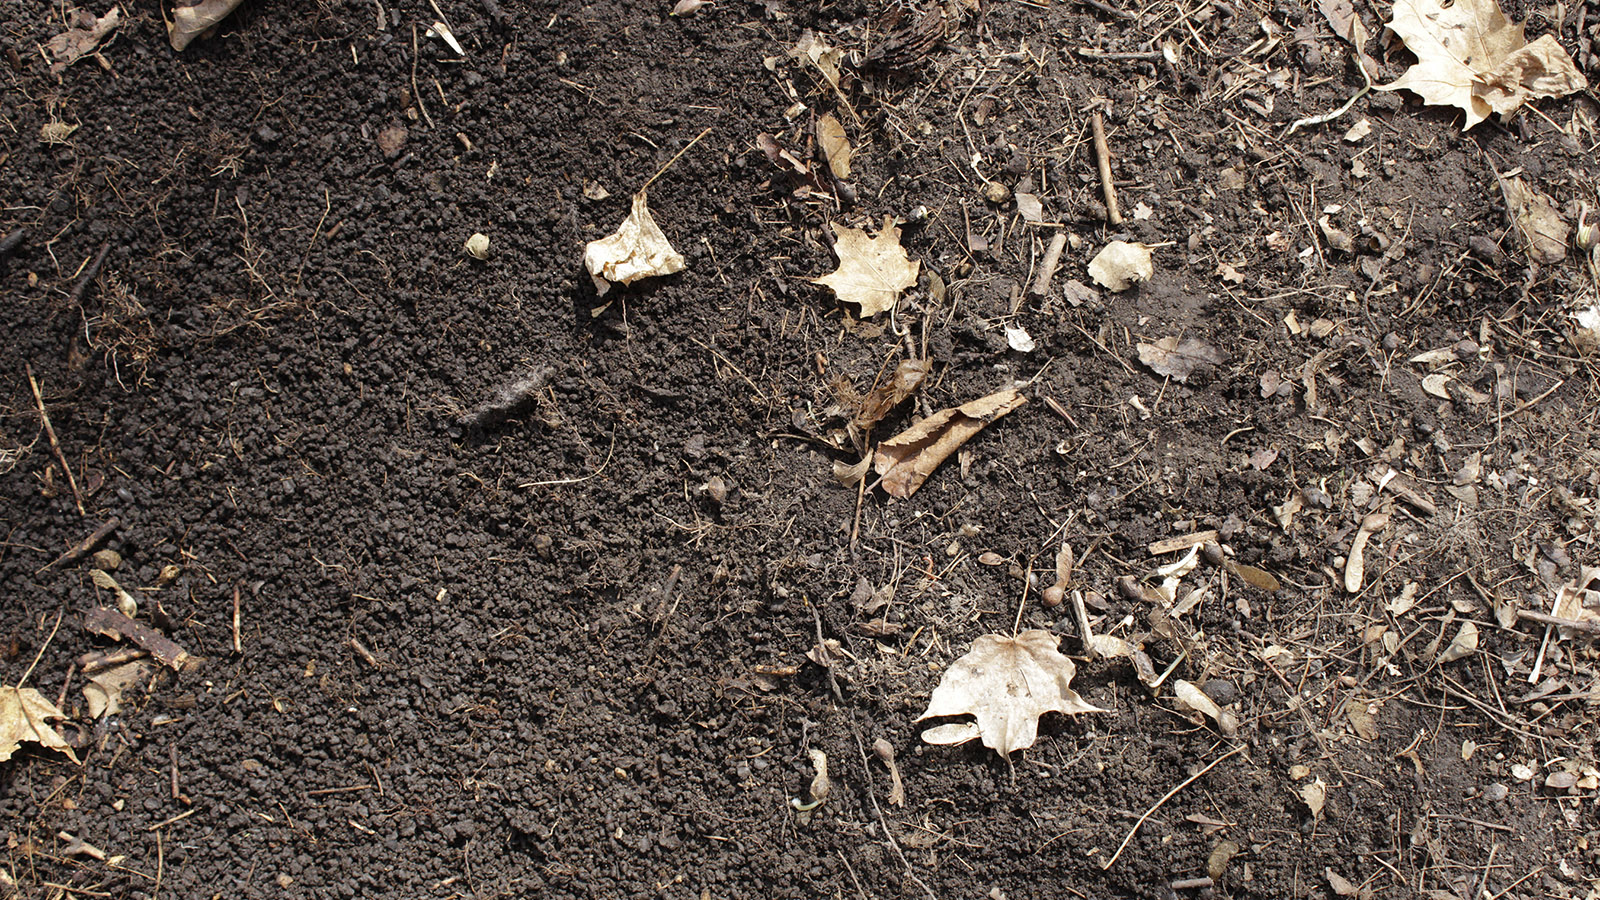 Soil on a forest floor with two different textures